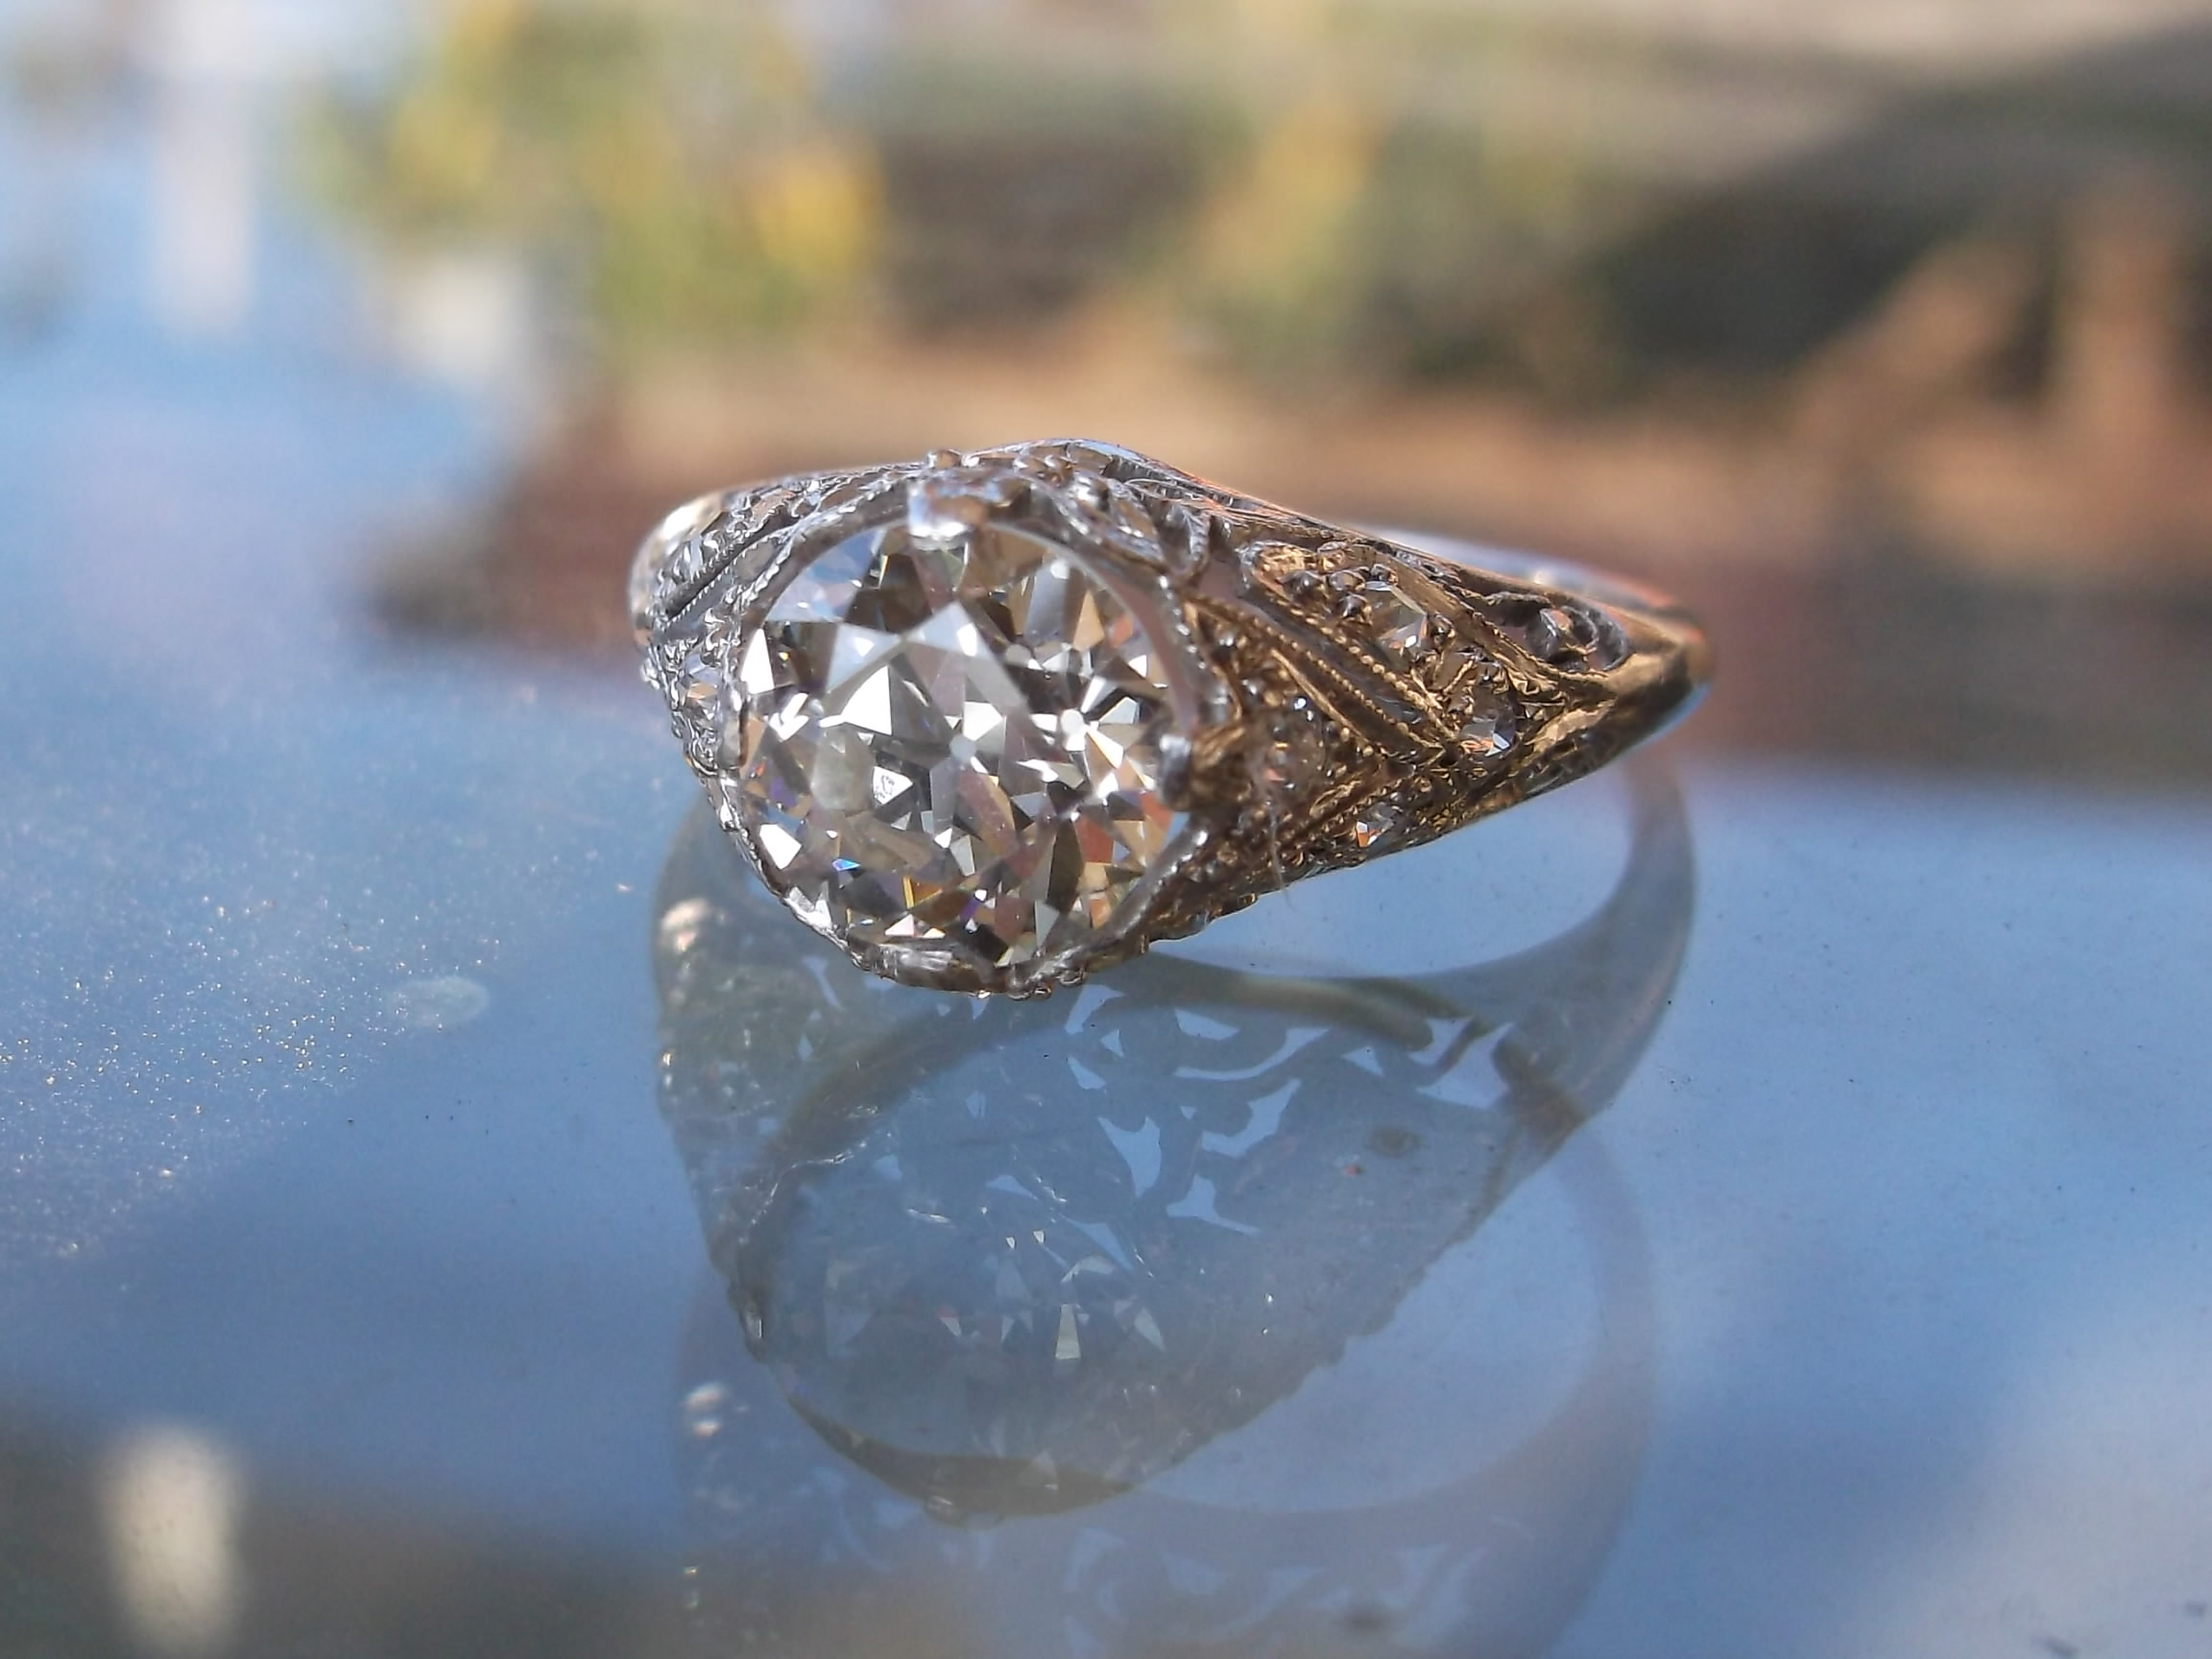 Gorgeous 1920's platinum and diamond ring from Walton's that was used in the TV show, Nashville.  The center stone is 1.25 carats, a VS1 in clarity and an I/J in color.